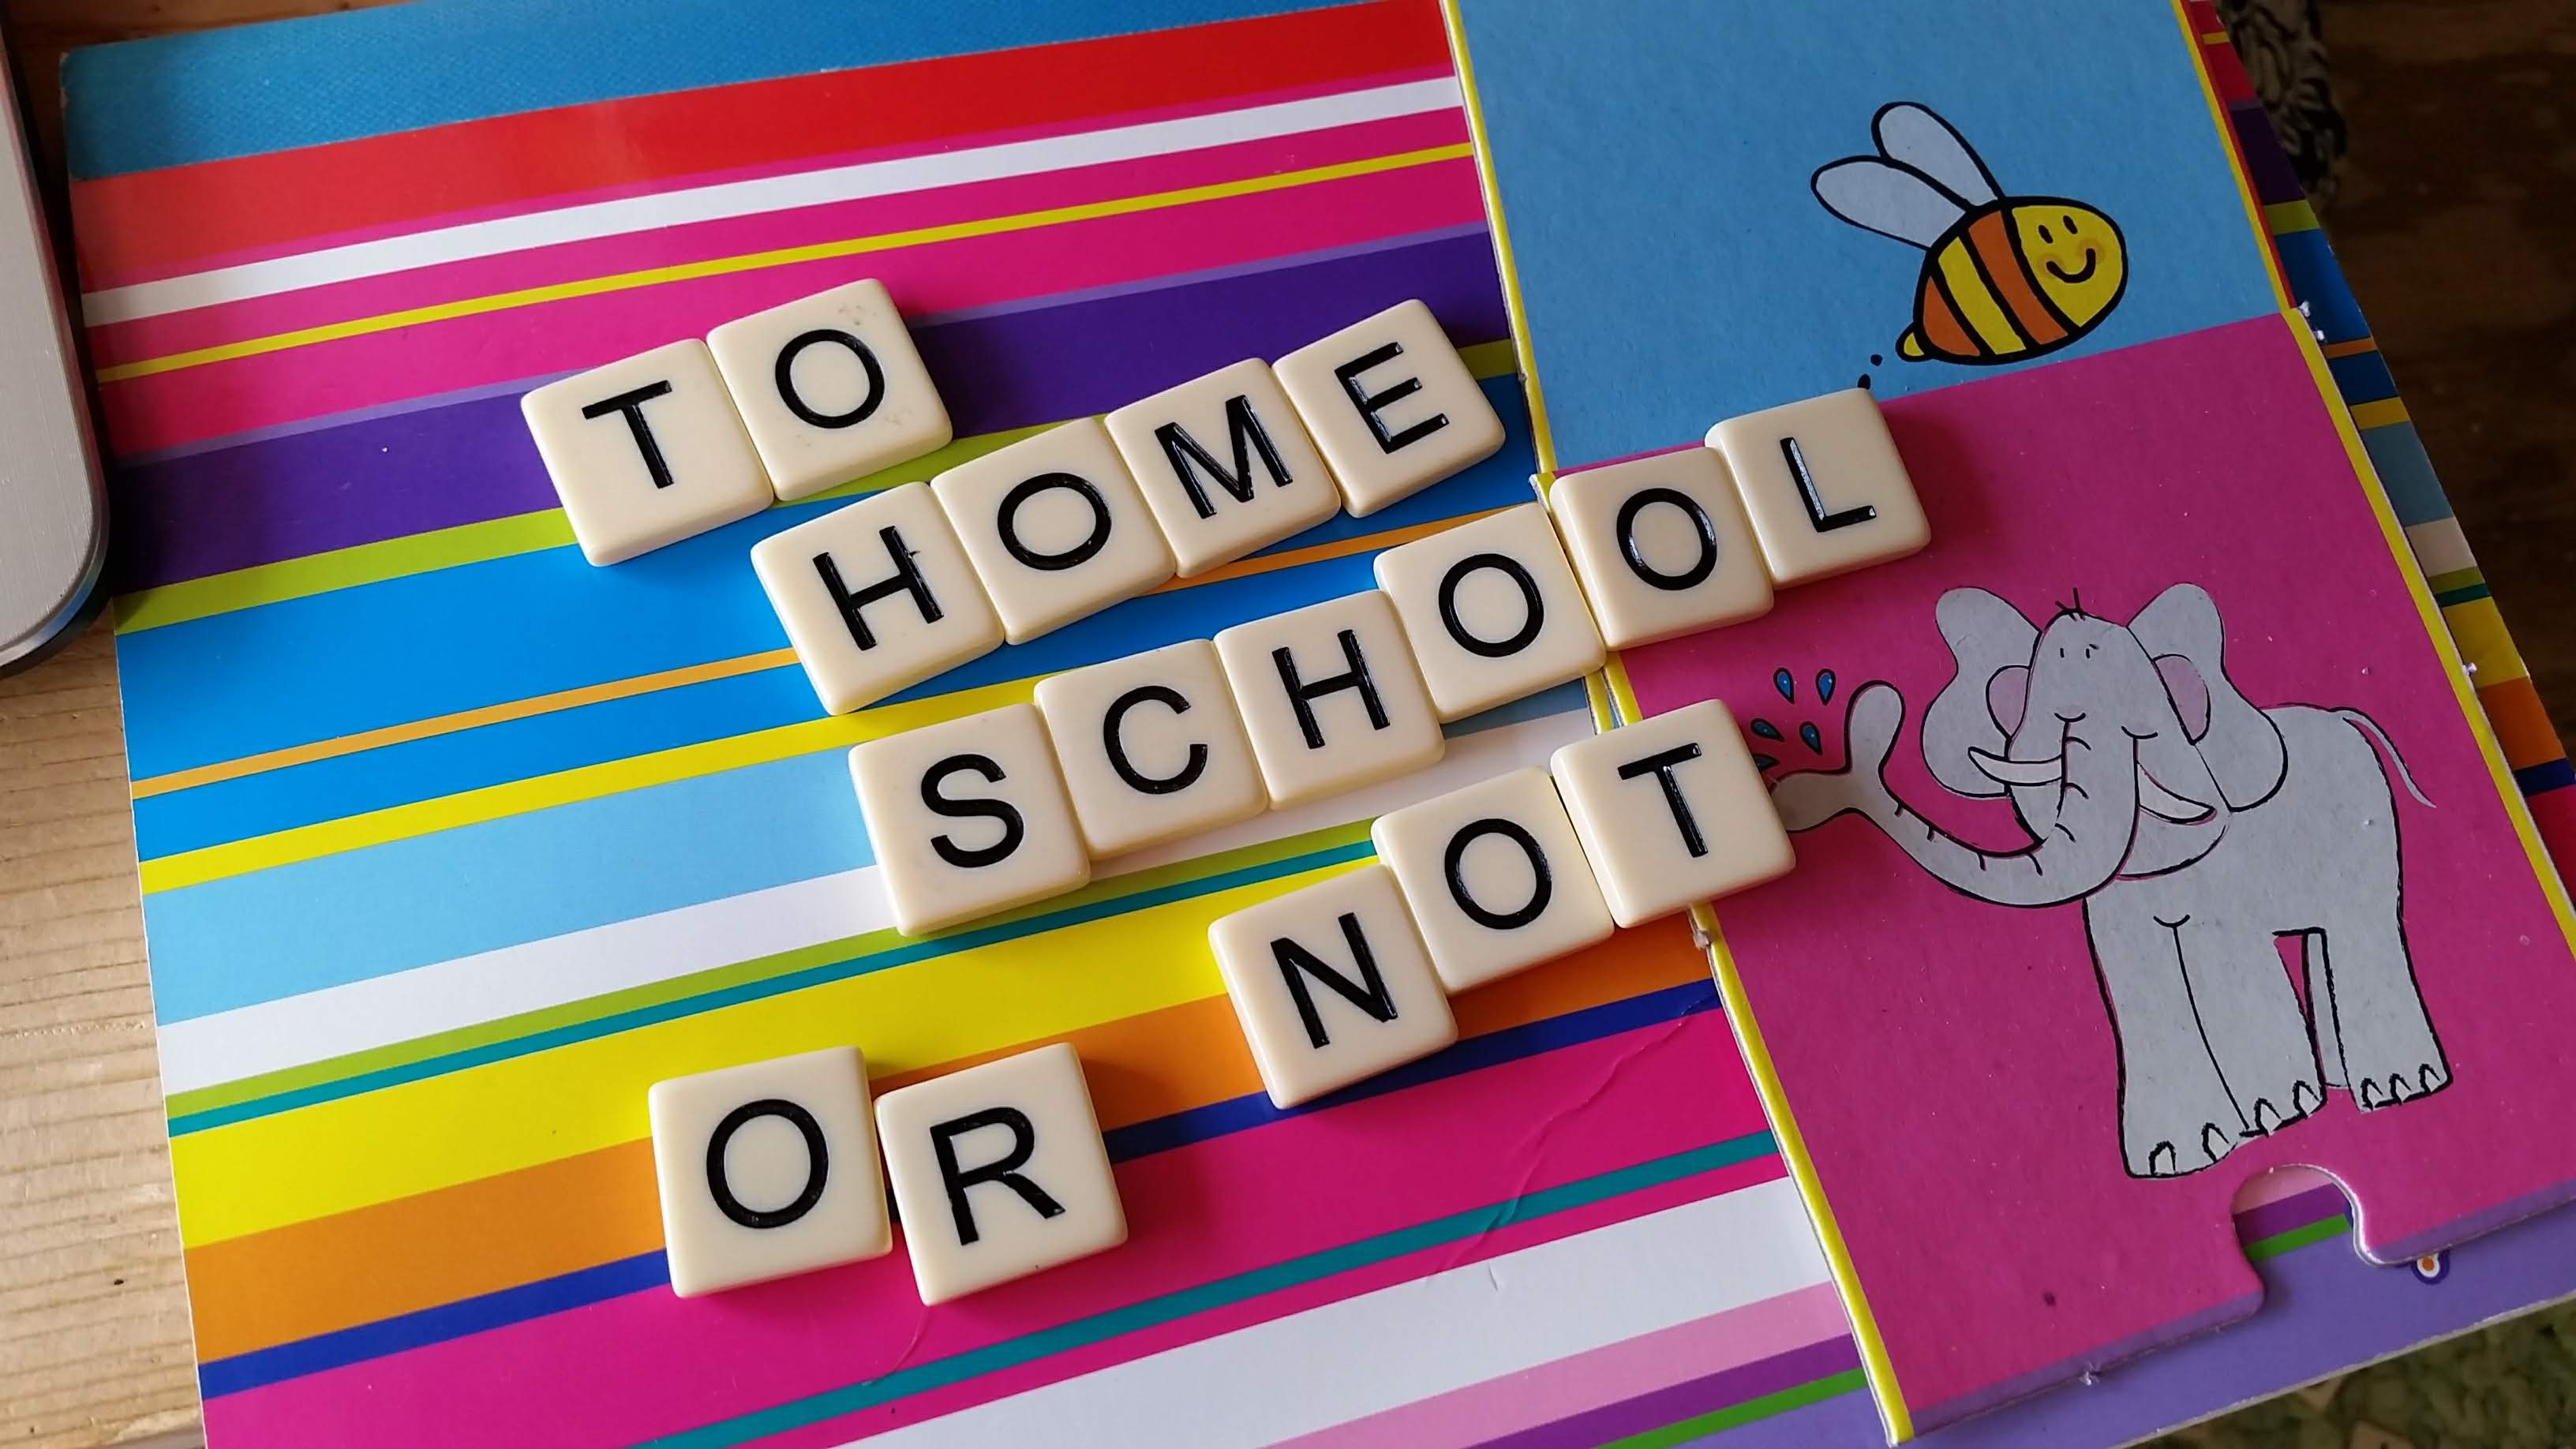 20190414_180537 Is homeschool the right choice?